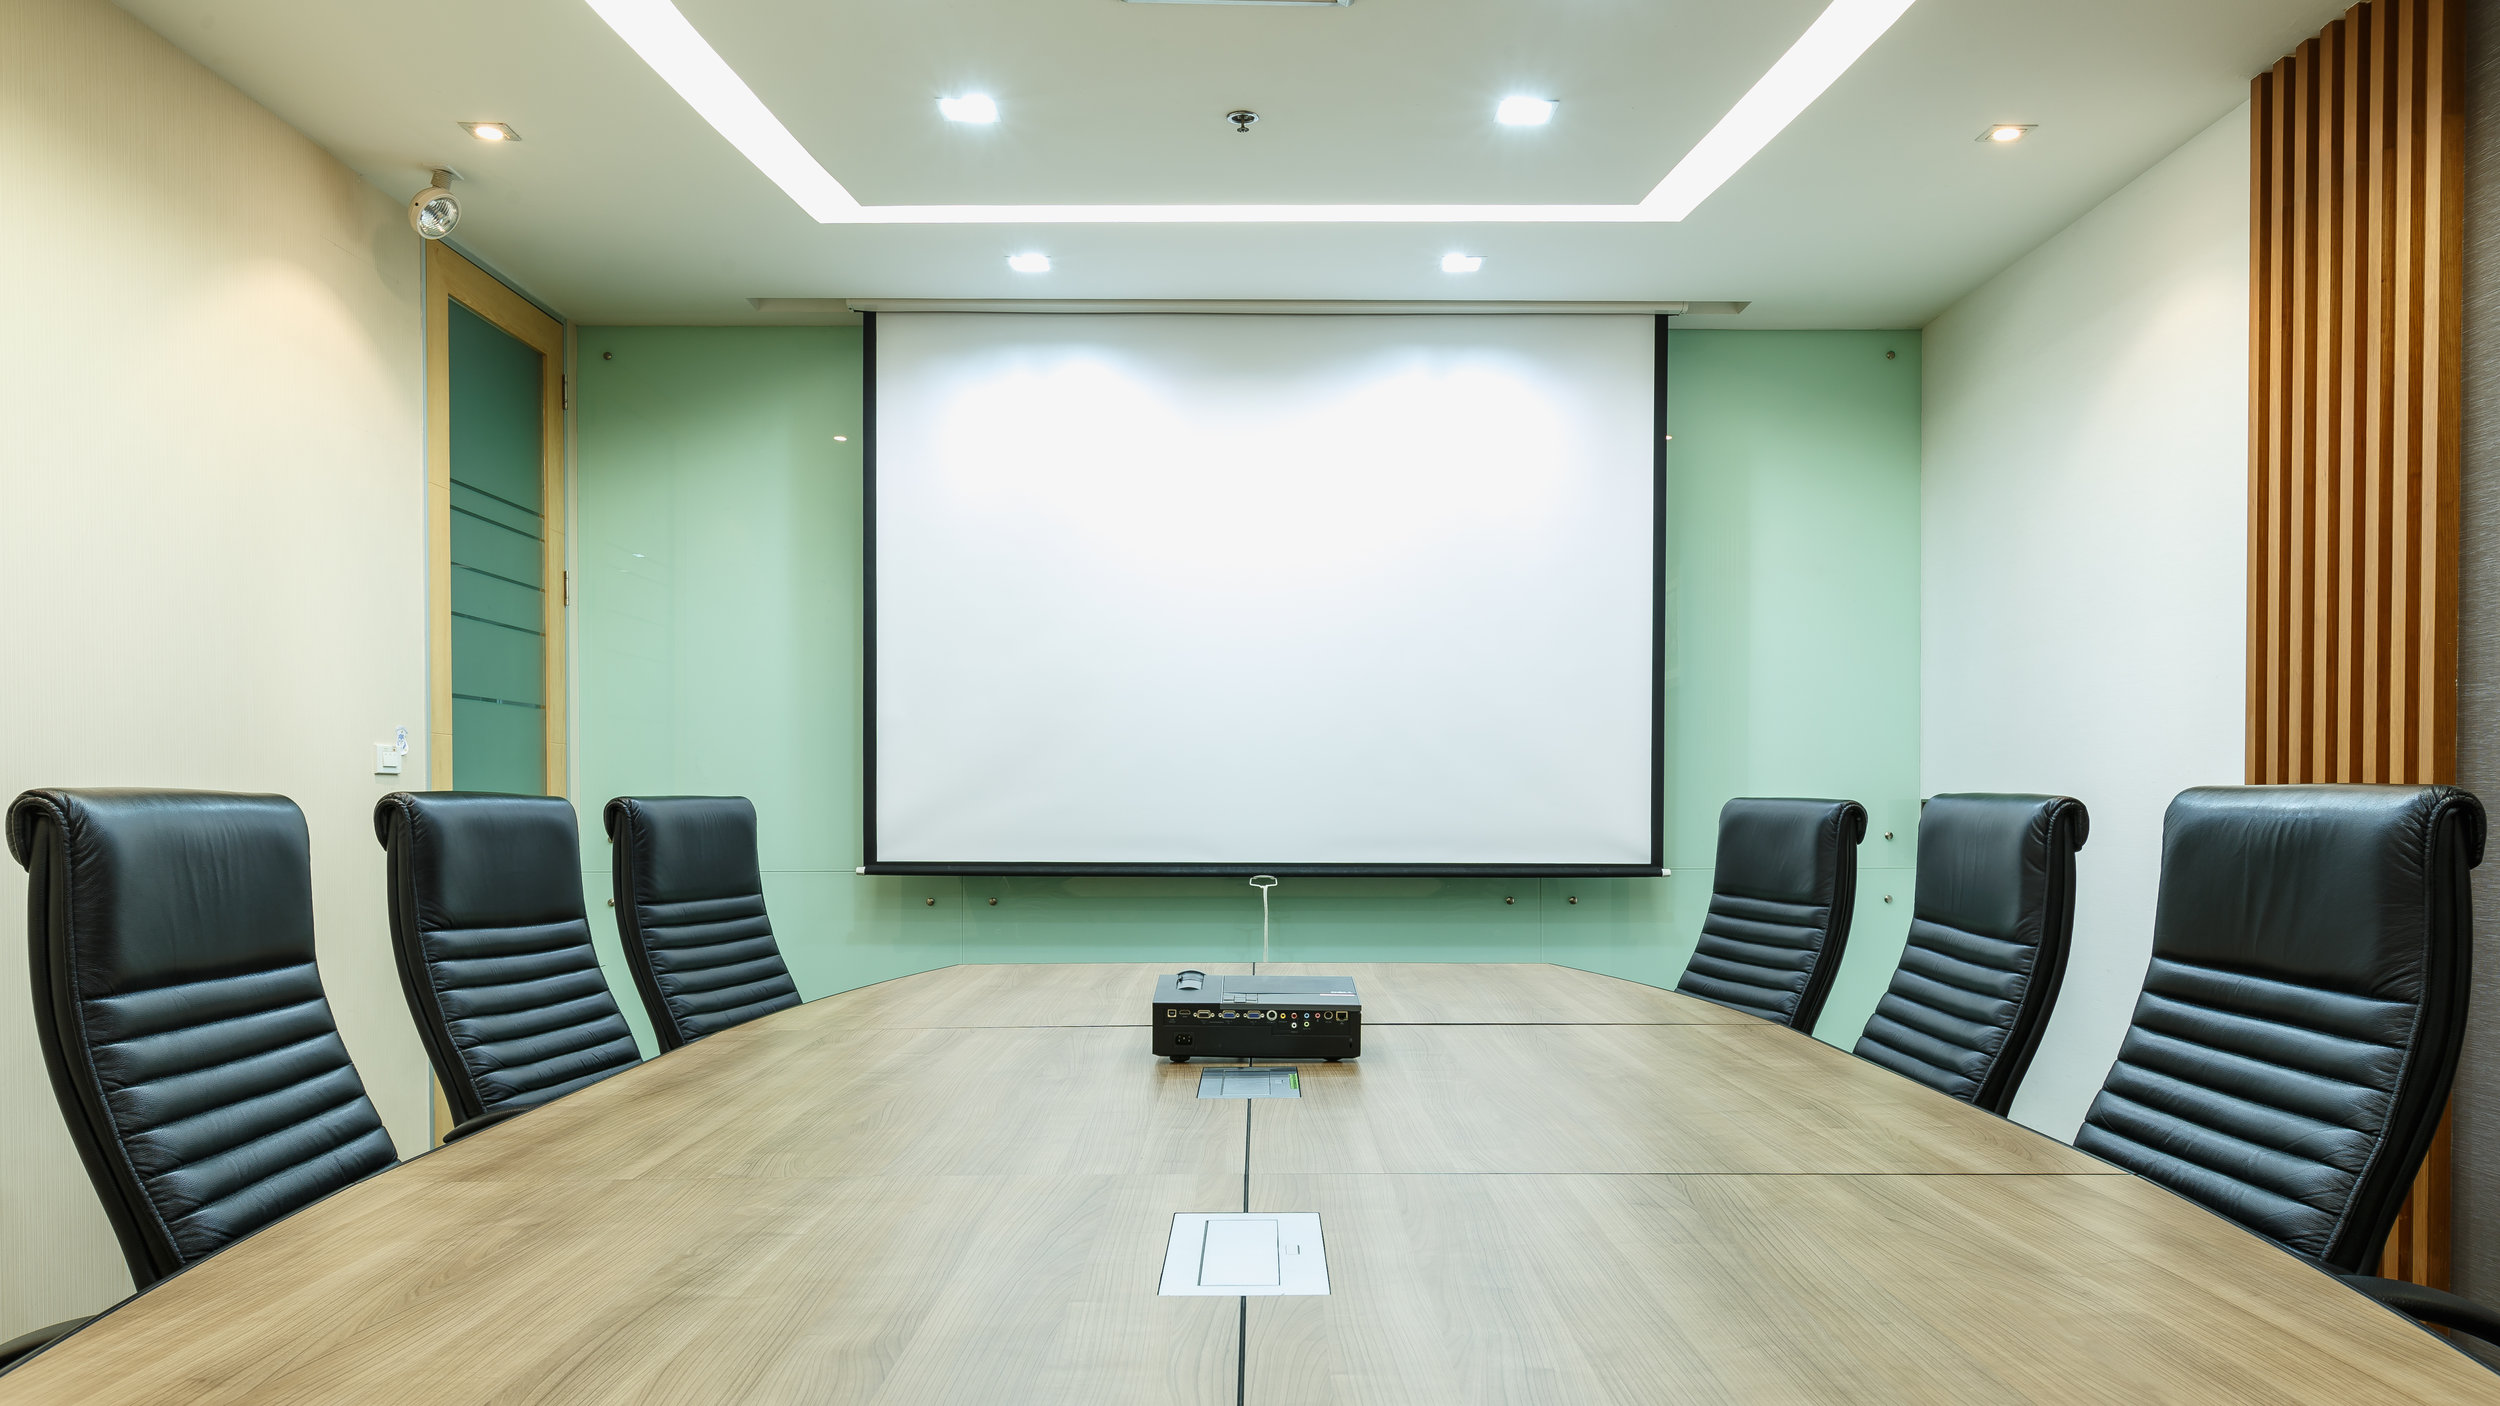 Lighting - Having good, well controlled lighting is essential to a meeting room. With Smart installations solutions you will have full control at a touch of a button and also have it intergrated into other systems. The simplest of these is to link it to your screen or projector so when a video is played the light will dim to half power.